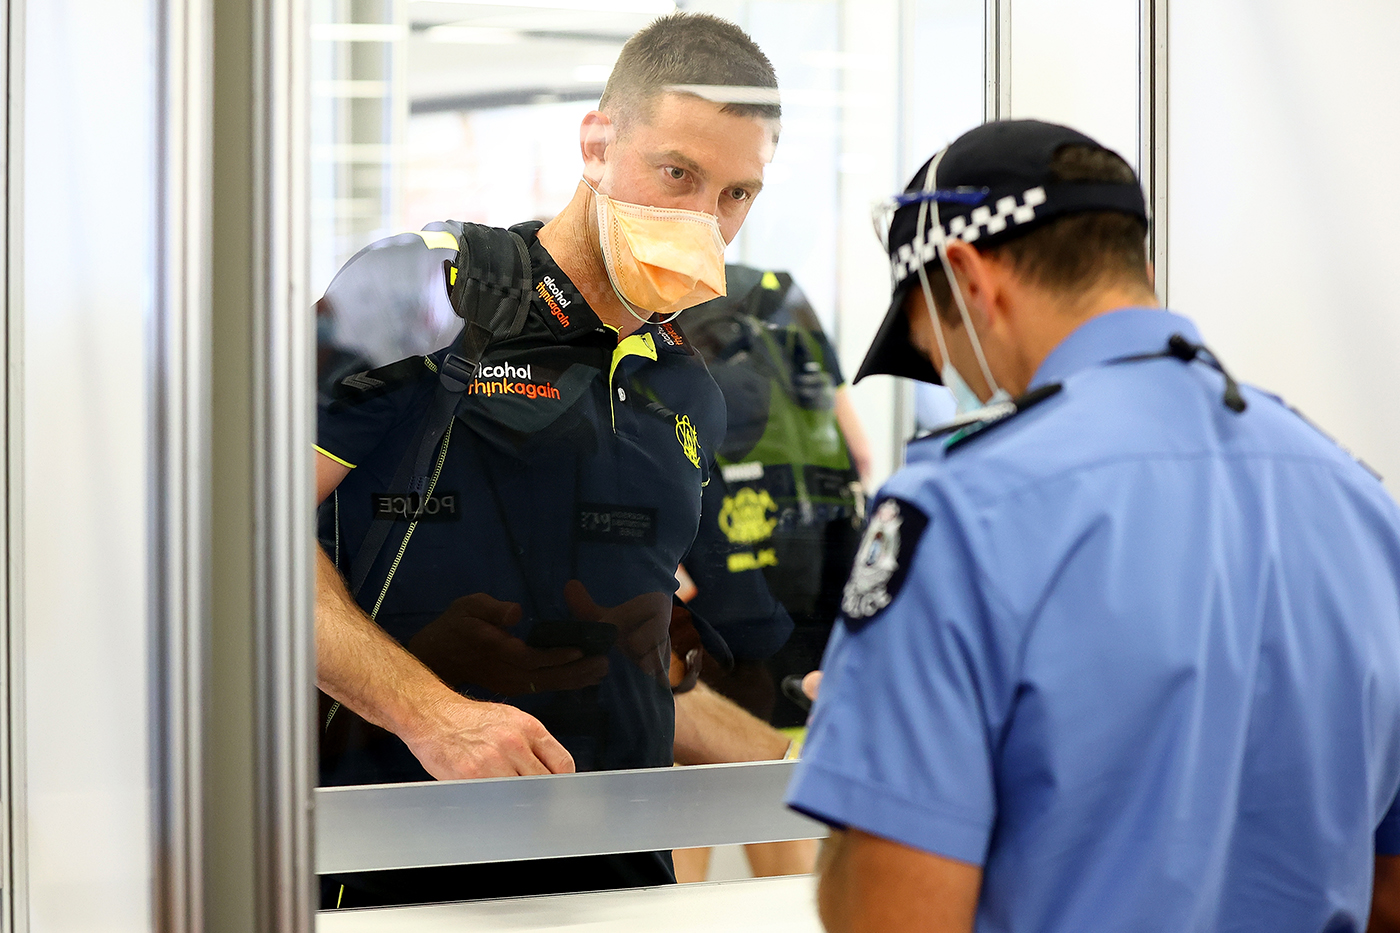 Shaun Marsh has his documents inspected at Perth airport after taking a flight from Adelaide